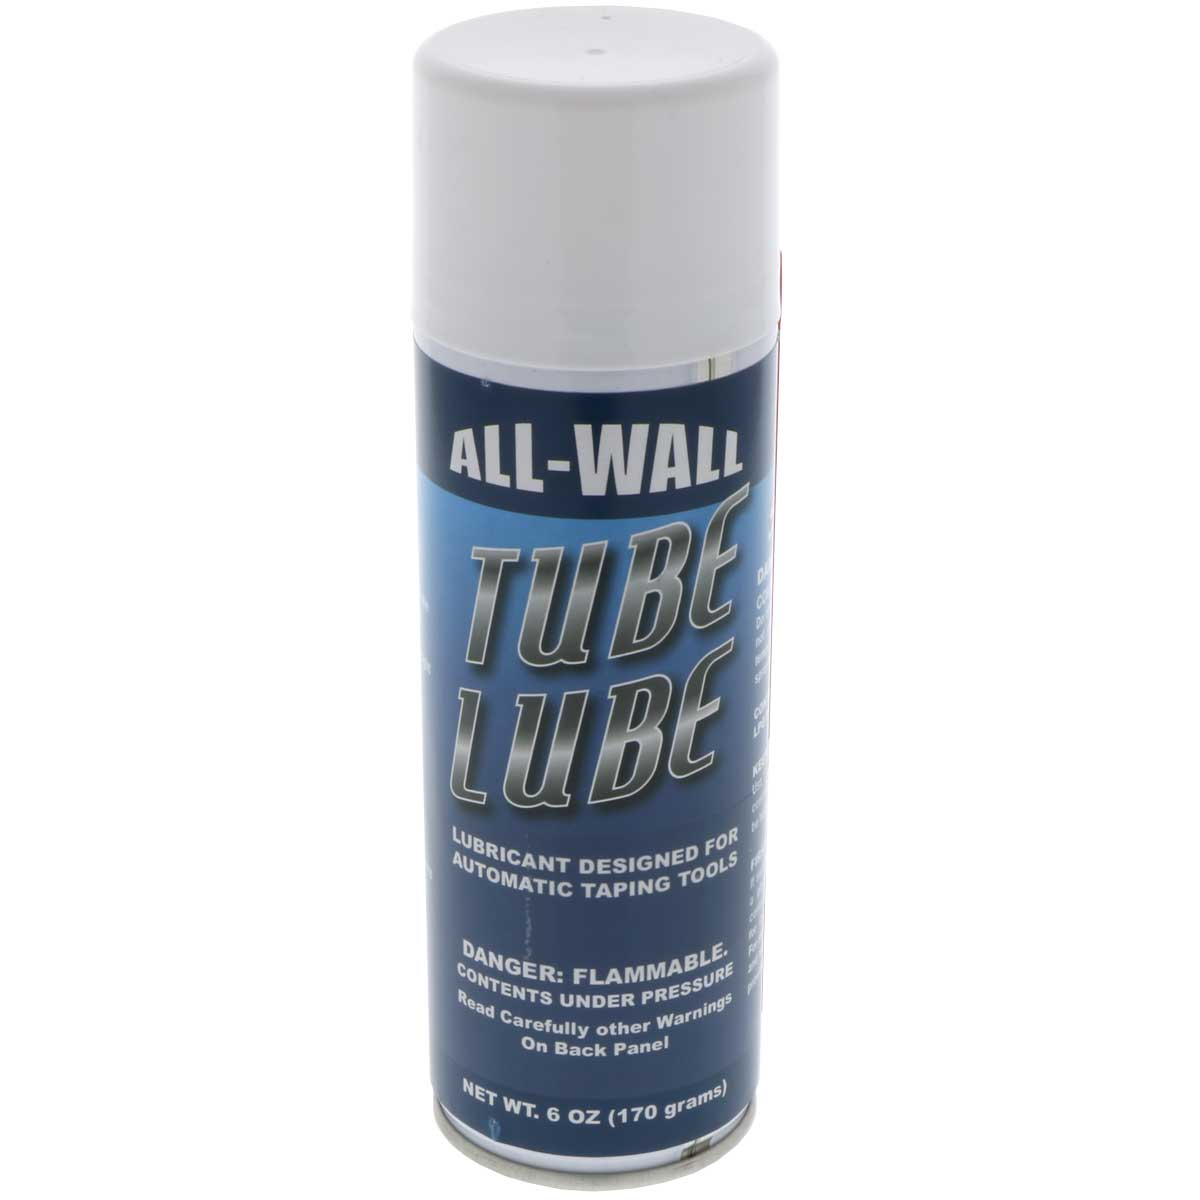 All-Wall Tube Lube Taping Tool Lubricant - 6oz